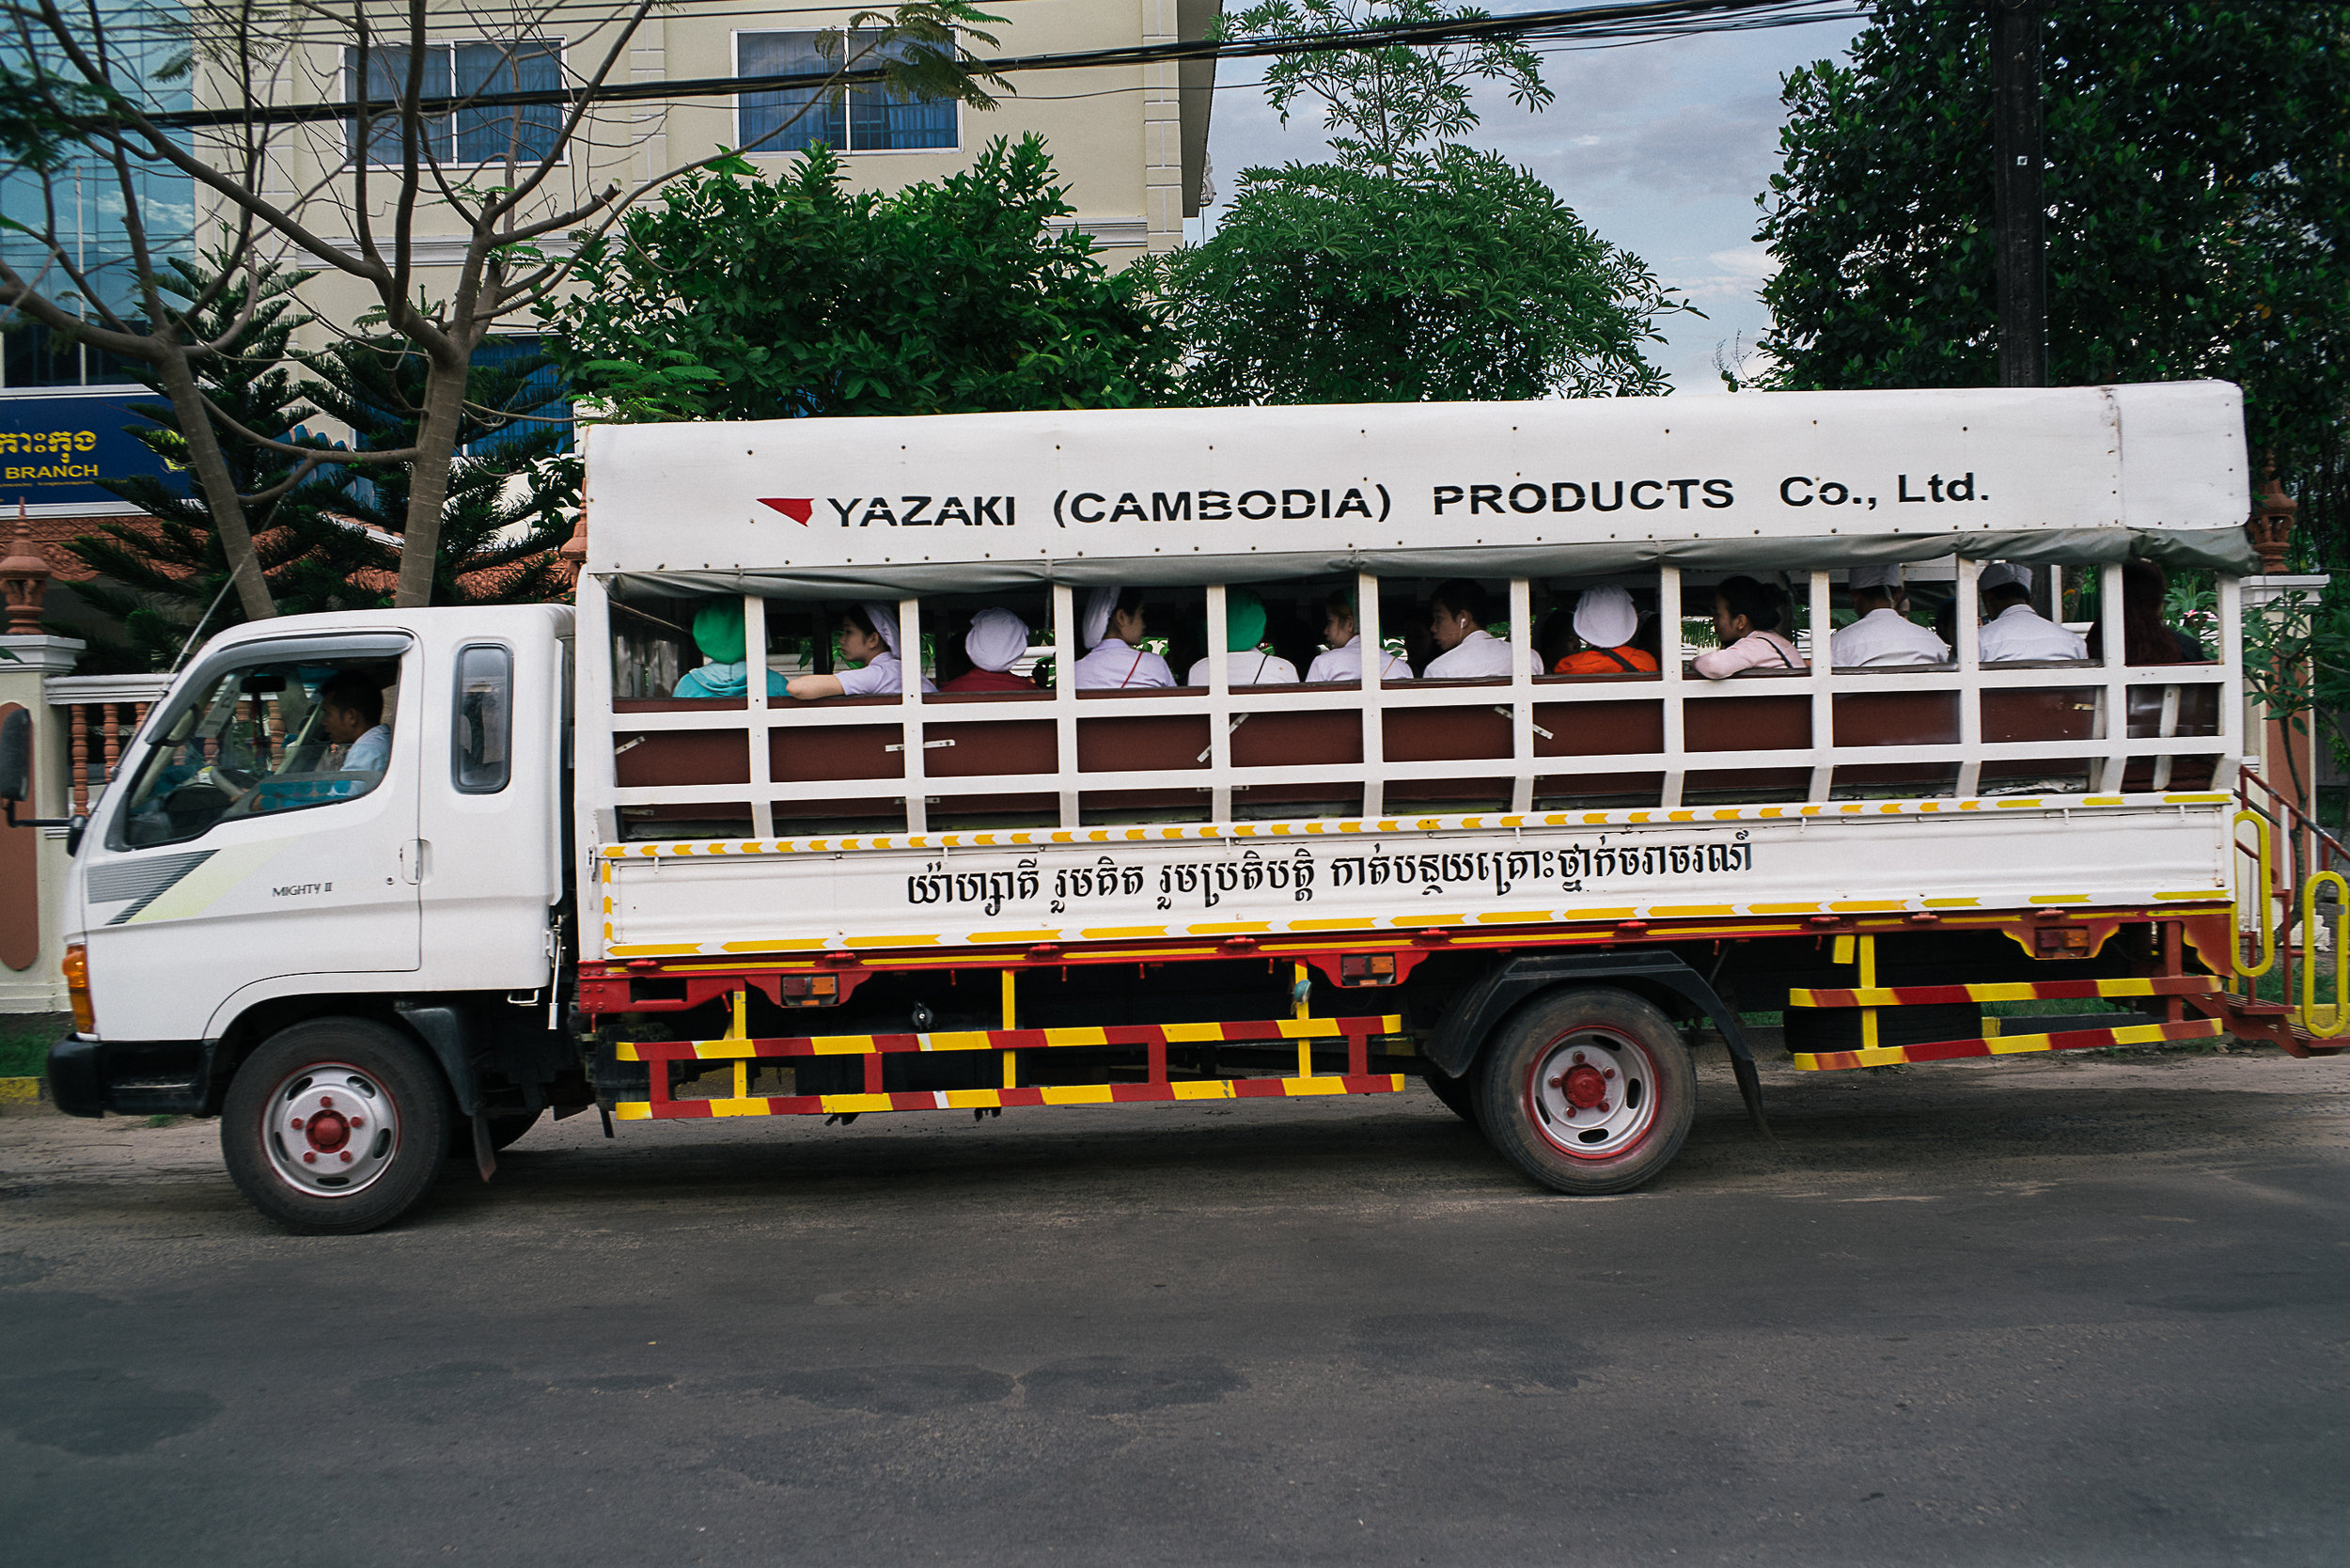 A truck full of SEZ workers returning home during the evening peak hour.